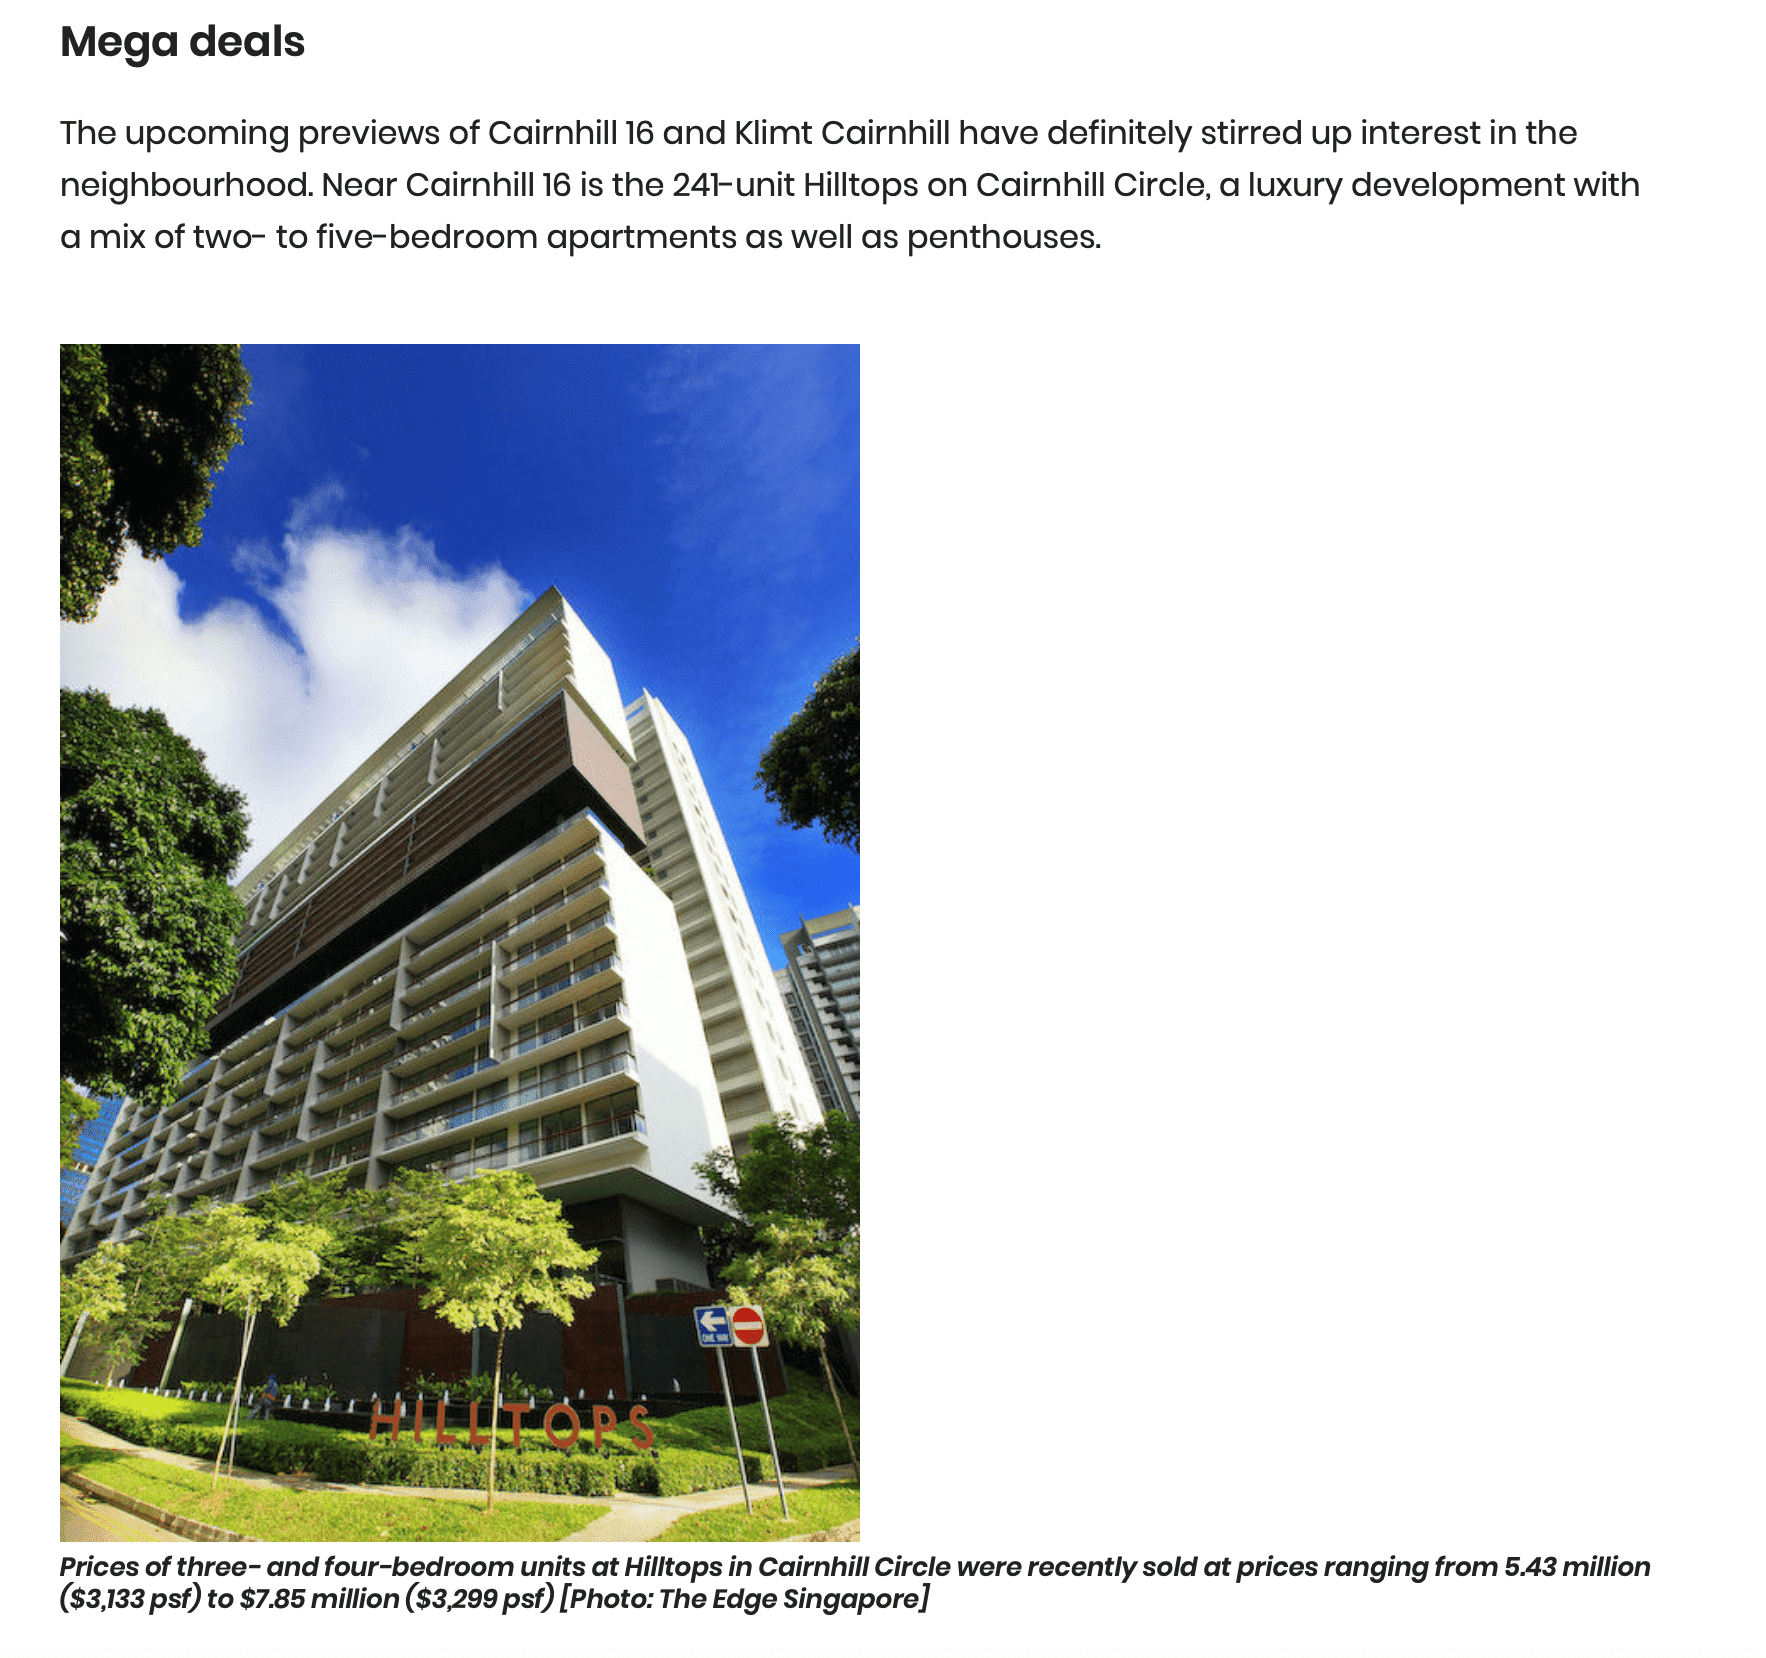 covid-19-may-amplify-attractiveness-singapore-real-estate-13